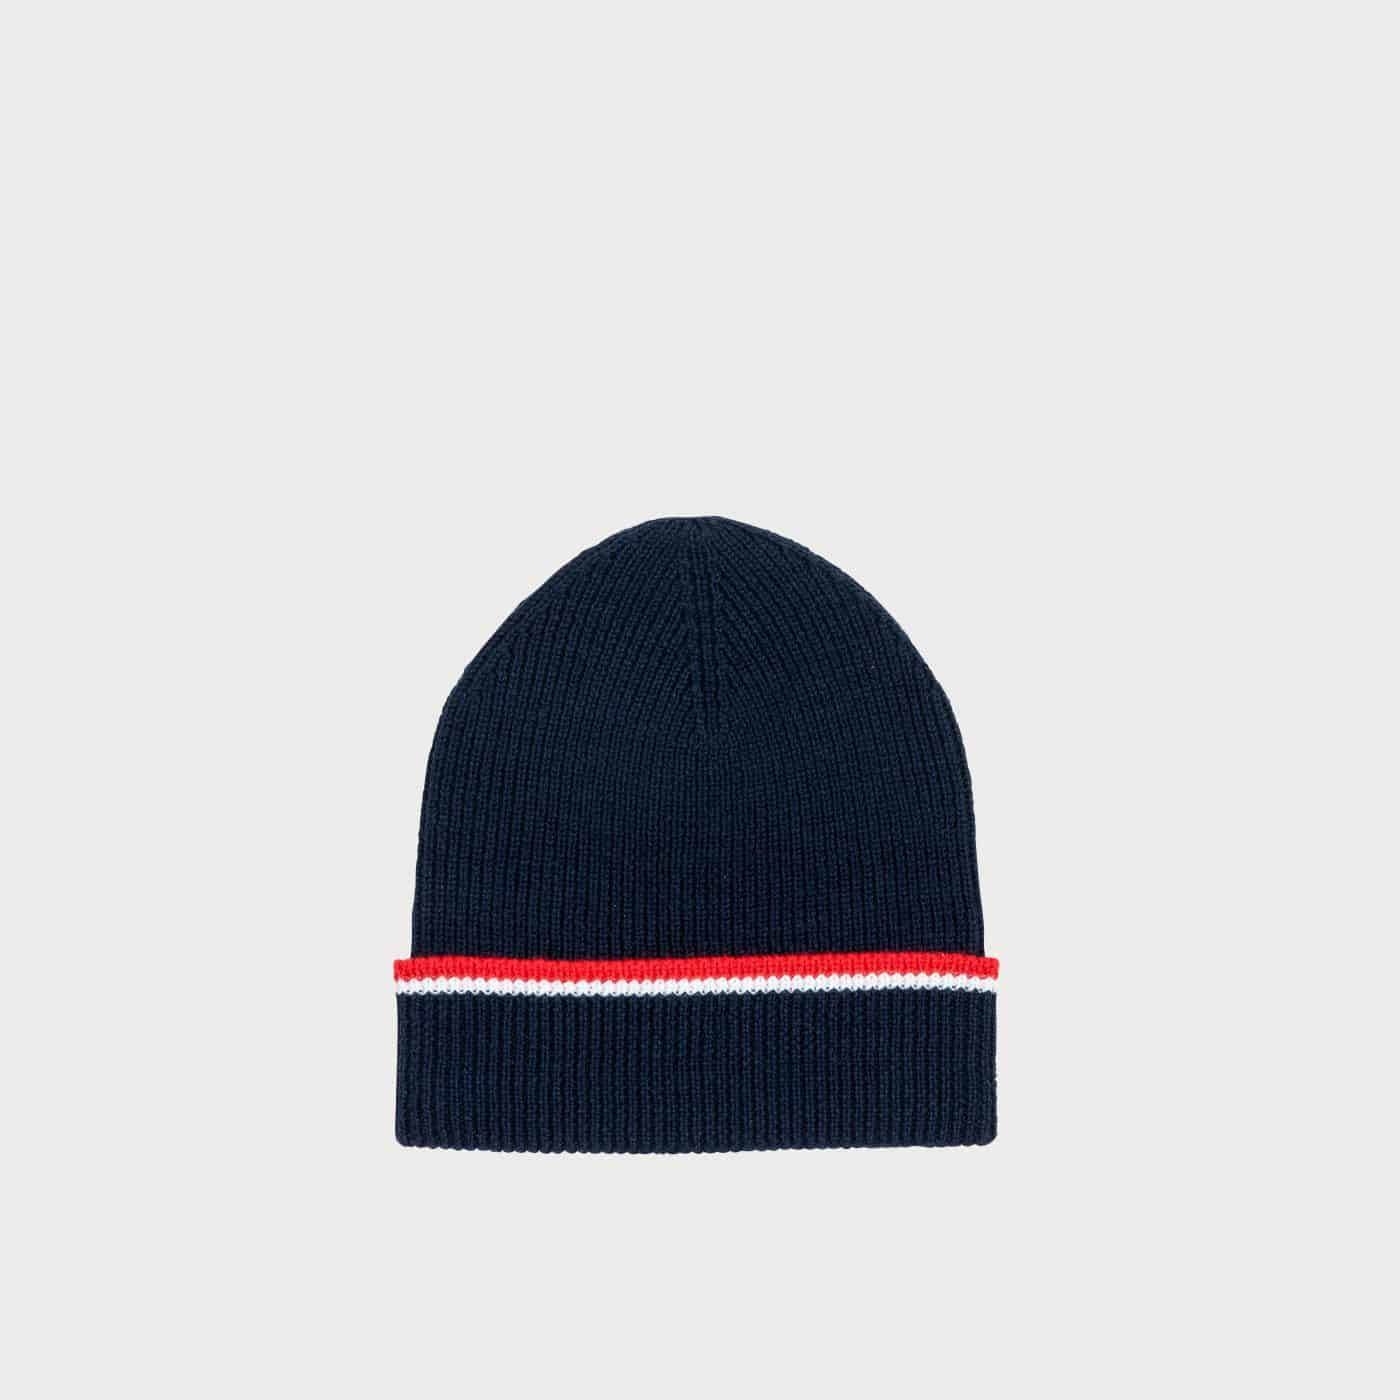 hugo-boss-paris-saint-germain-lifestyle-bonnet